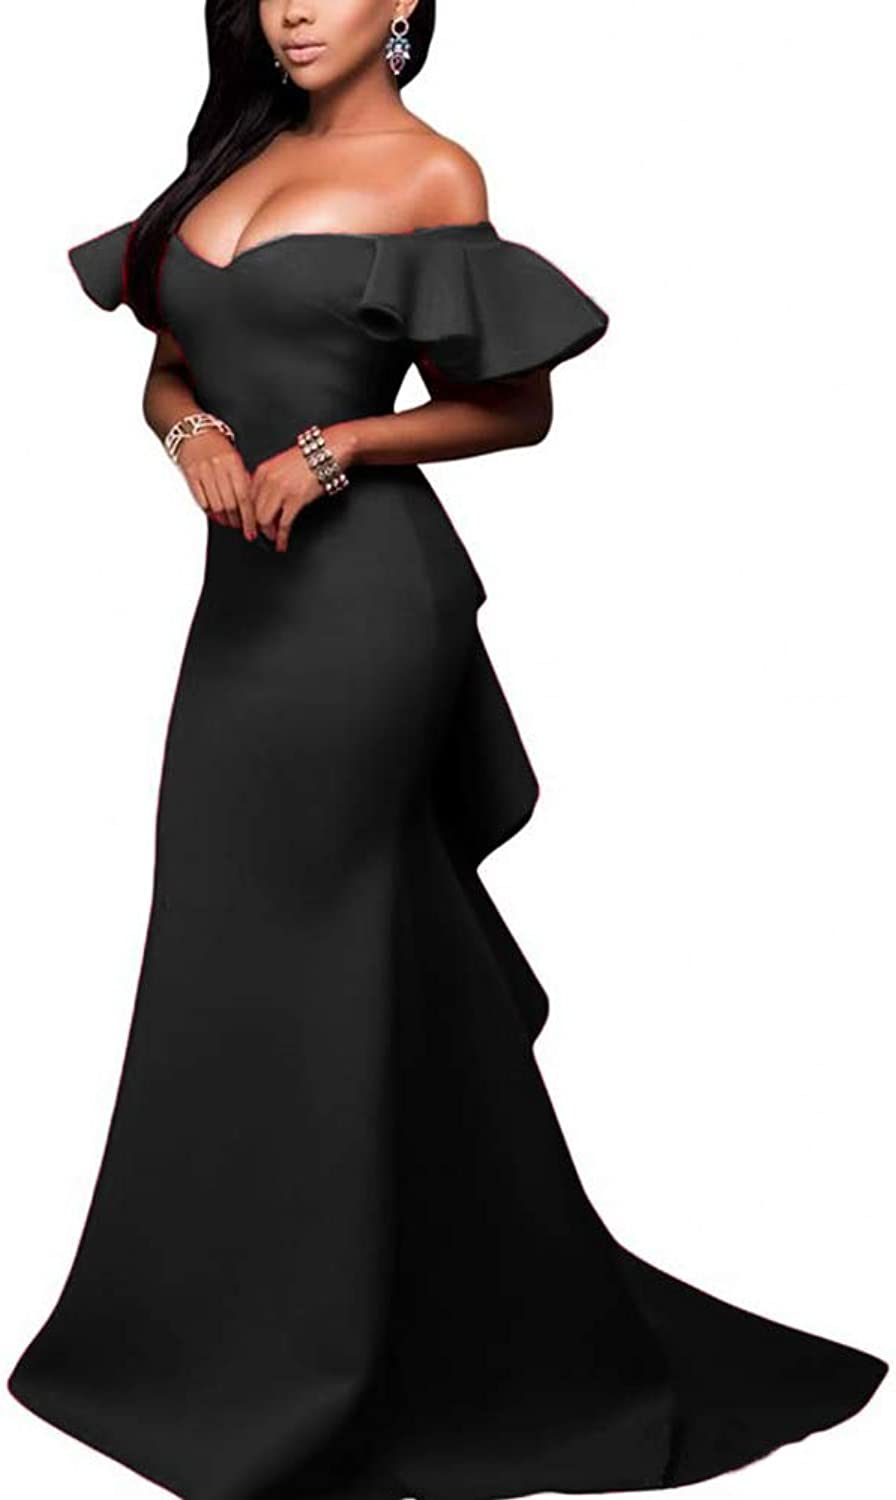 FJMM Womens Off The Shoulder Mermaid Evening Dresses Flouncing Sexy Backless Prom Gowns for Party